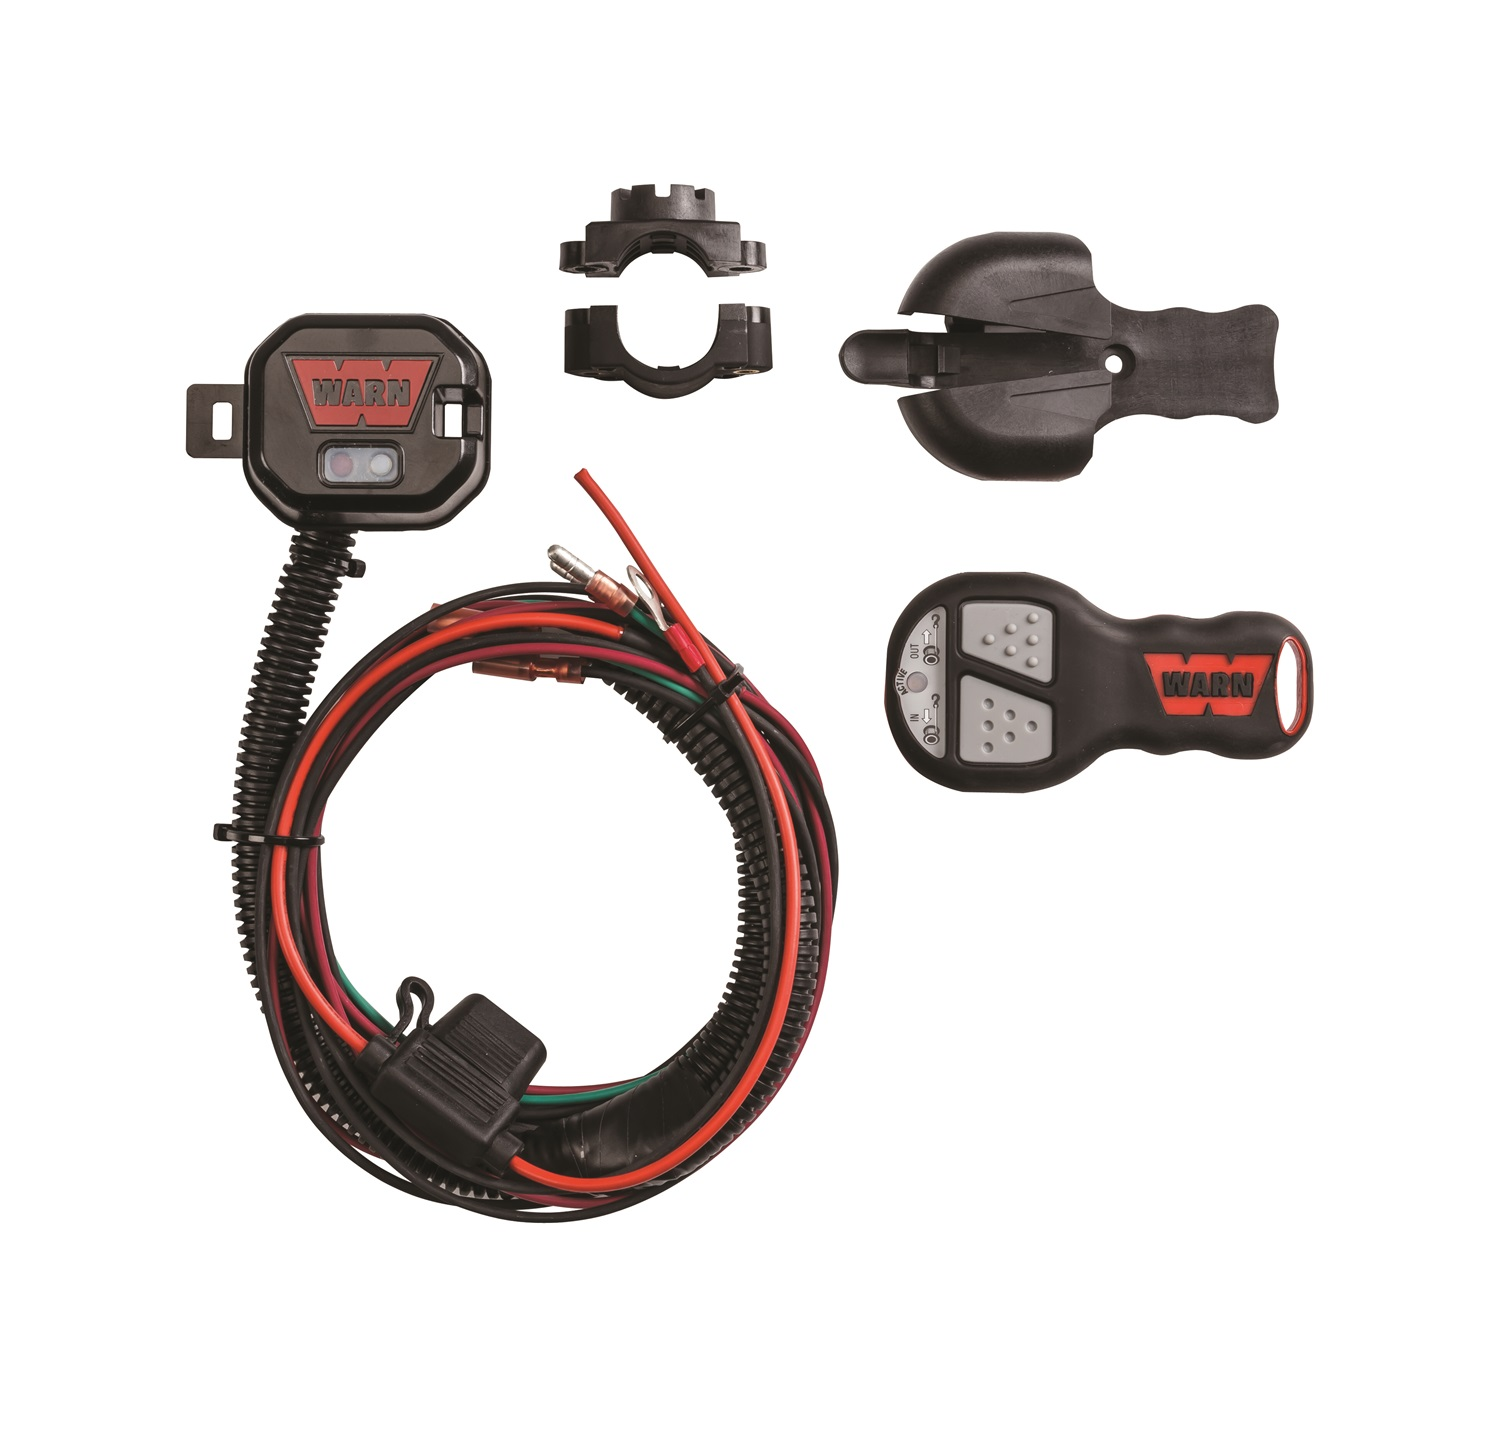 Warn 90288 Winch Wireless Control System at Sears.com